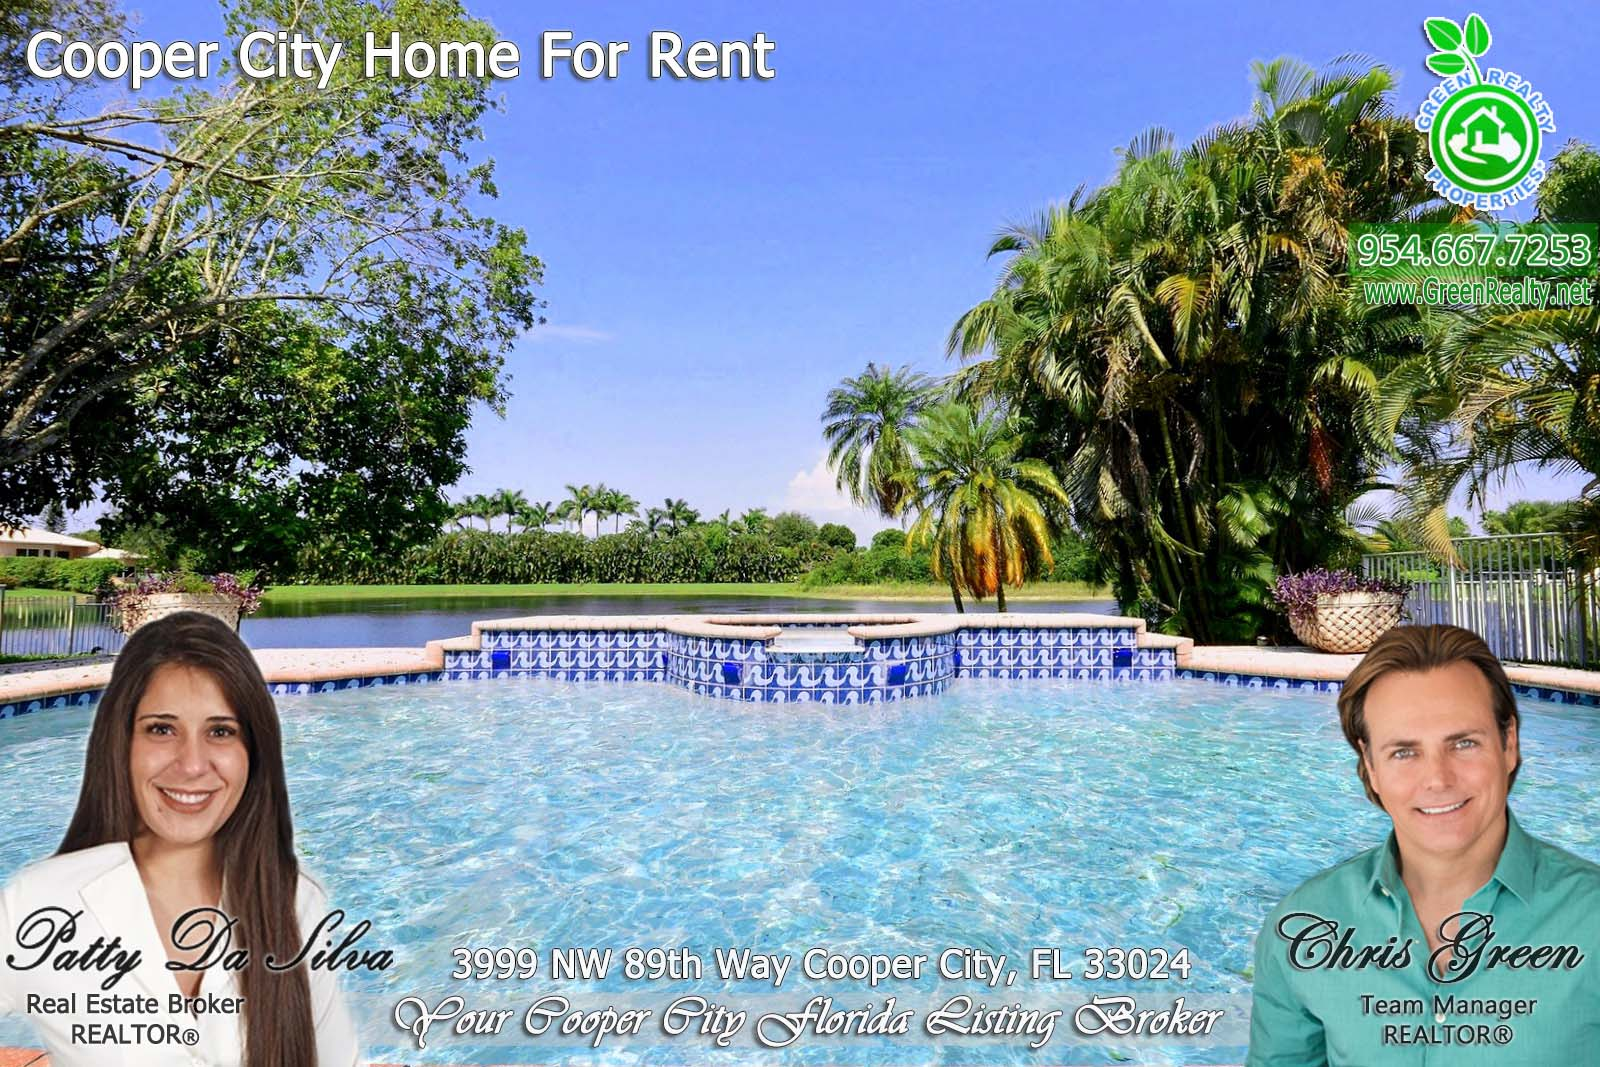 43 Homes For Rent in Cooper City (1)